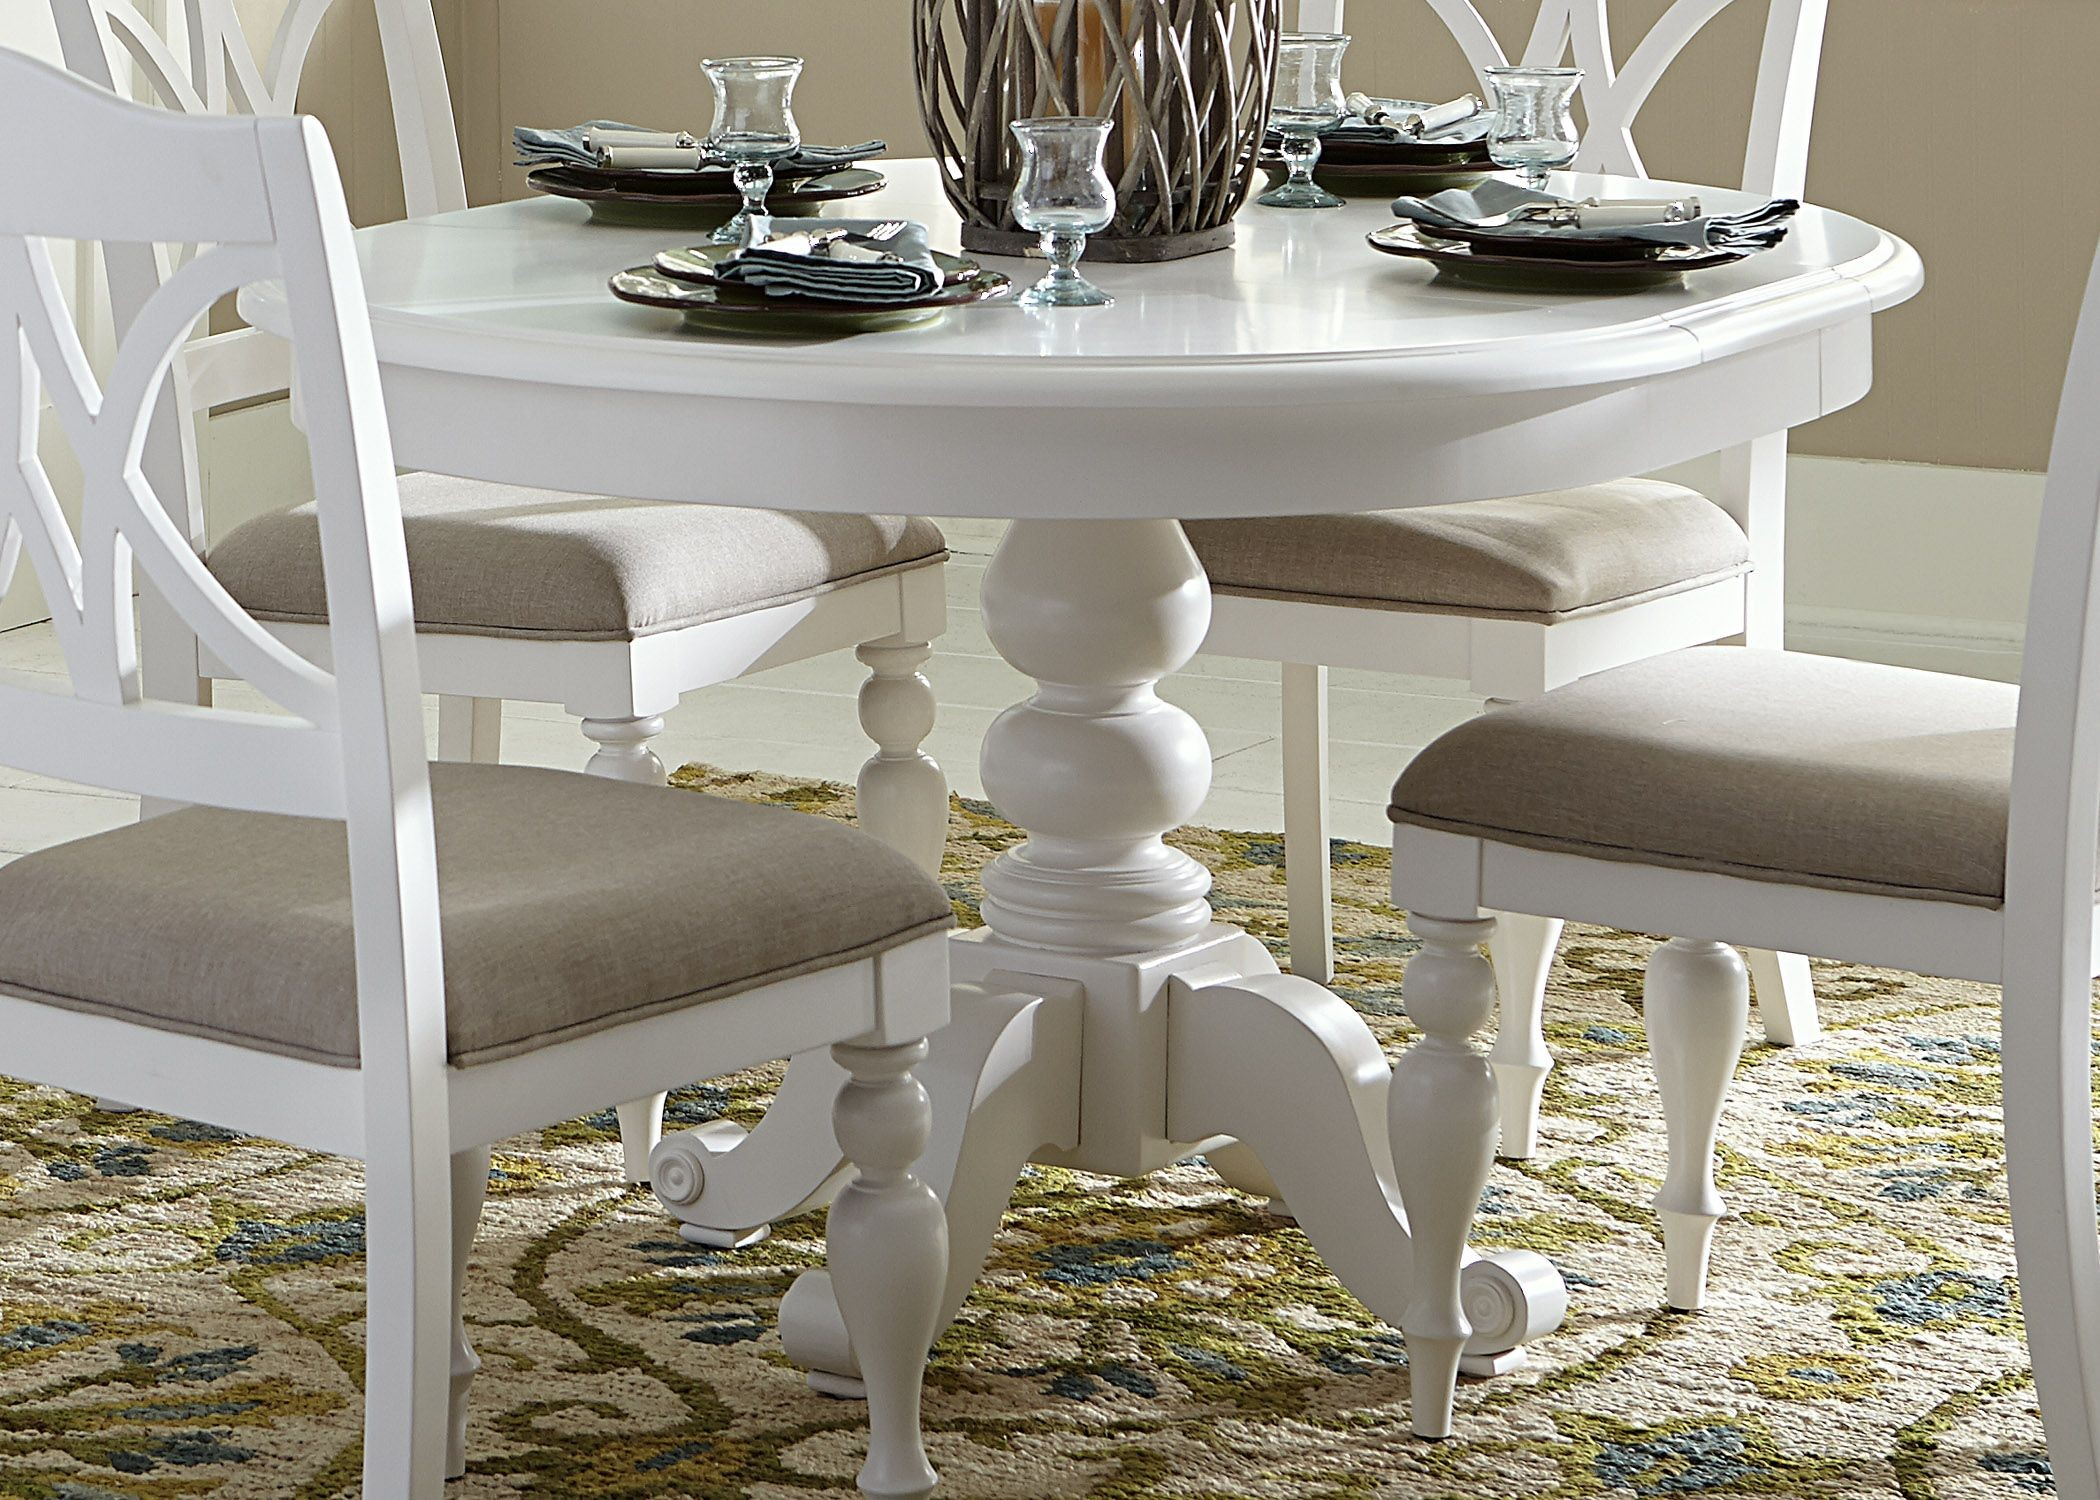 white table chairs massage chair lease summer house oyster round pedestal